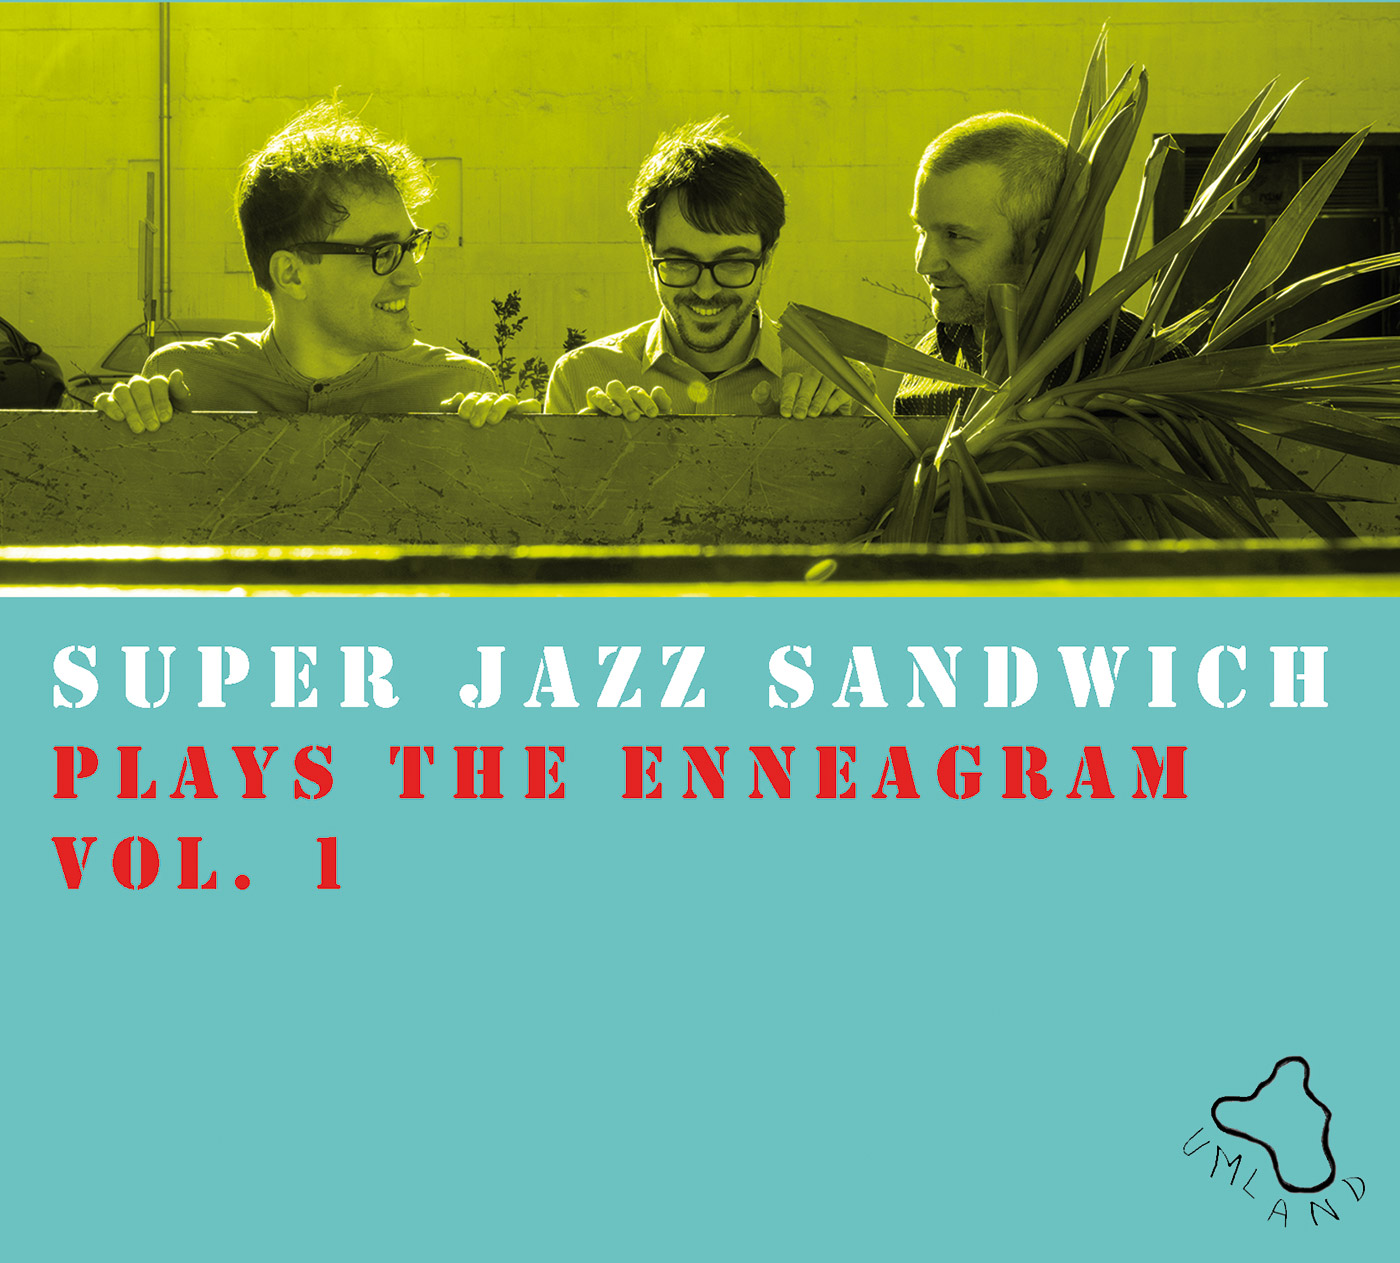 SUPER JAZZ SANDWICH | Salon21 | Umland Records